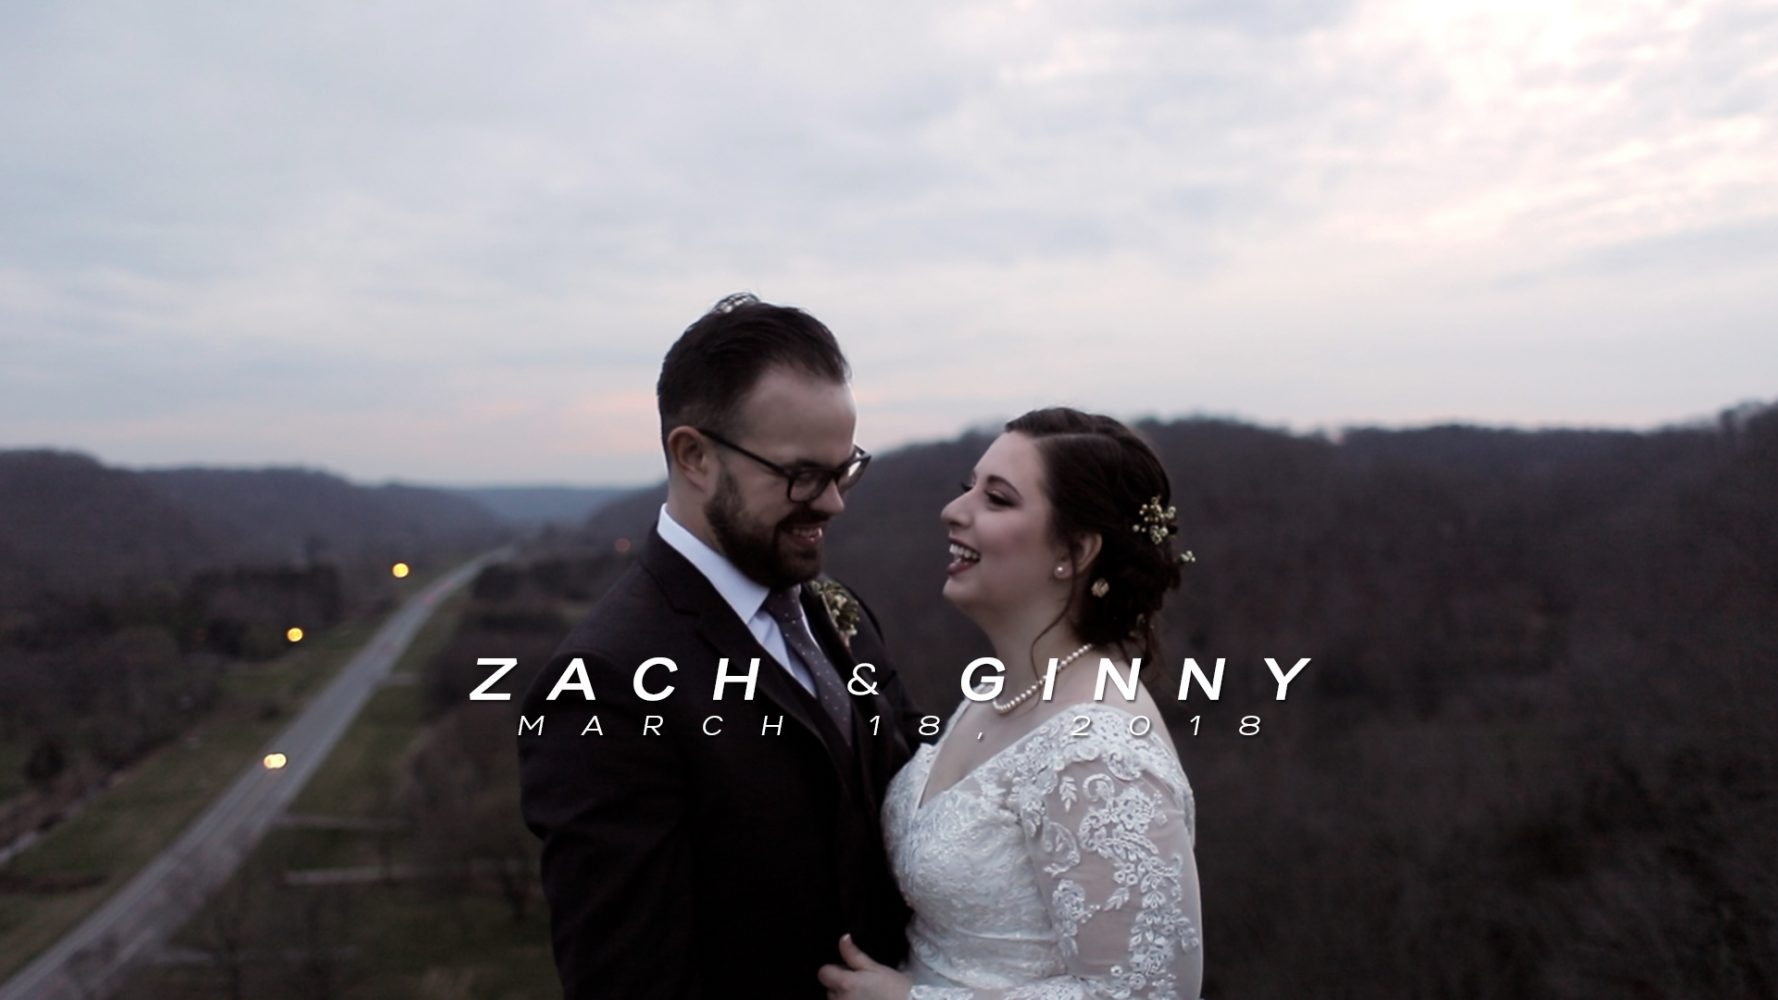 Zach + Ginny | Nashville, Tennessee | Loveless Barn